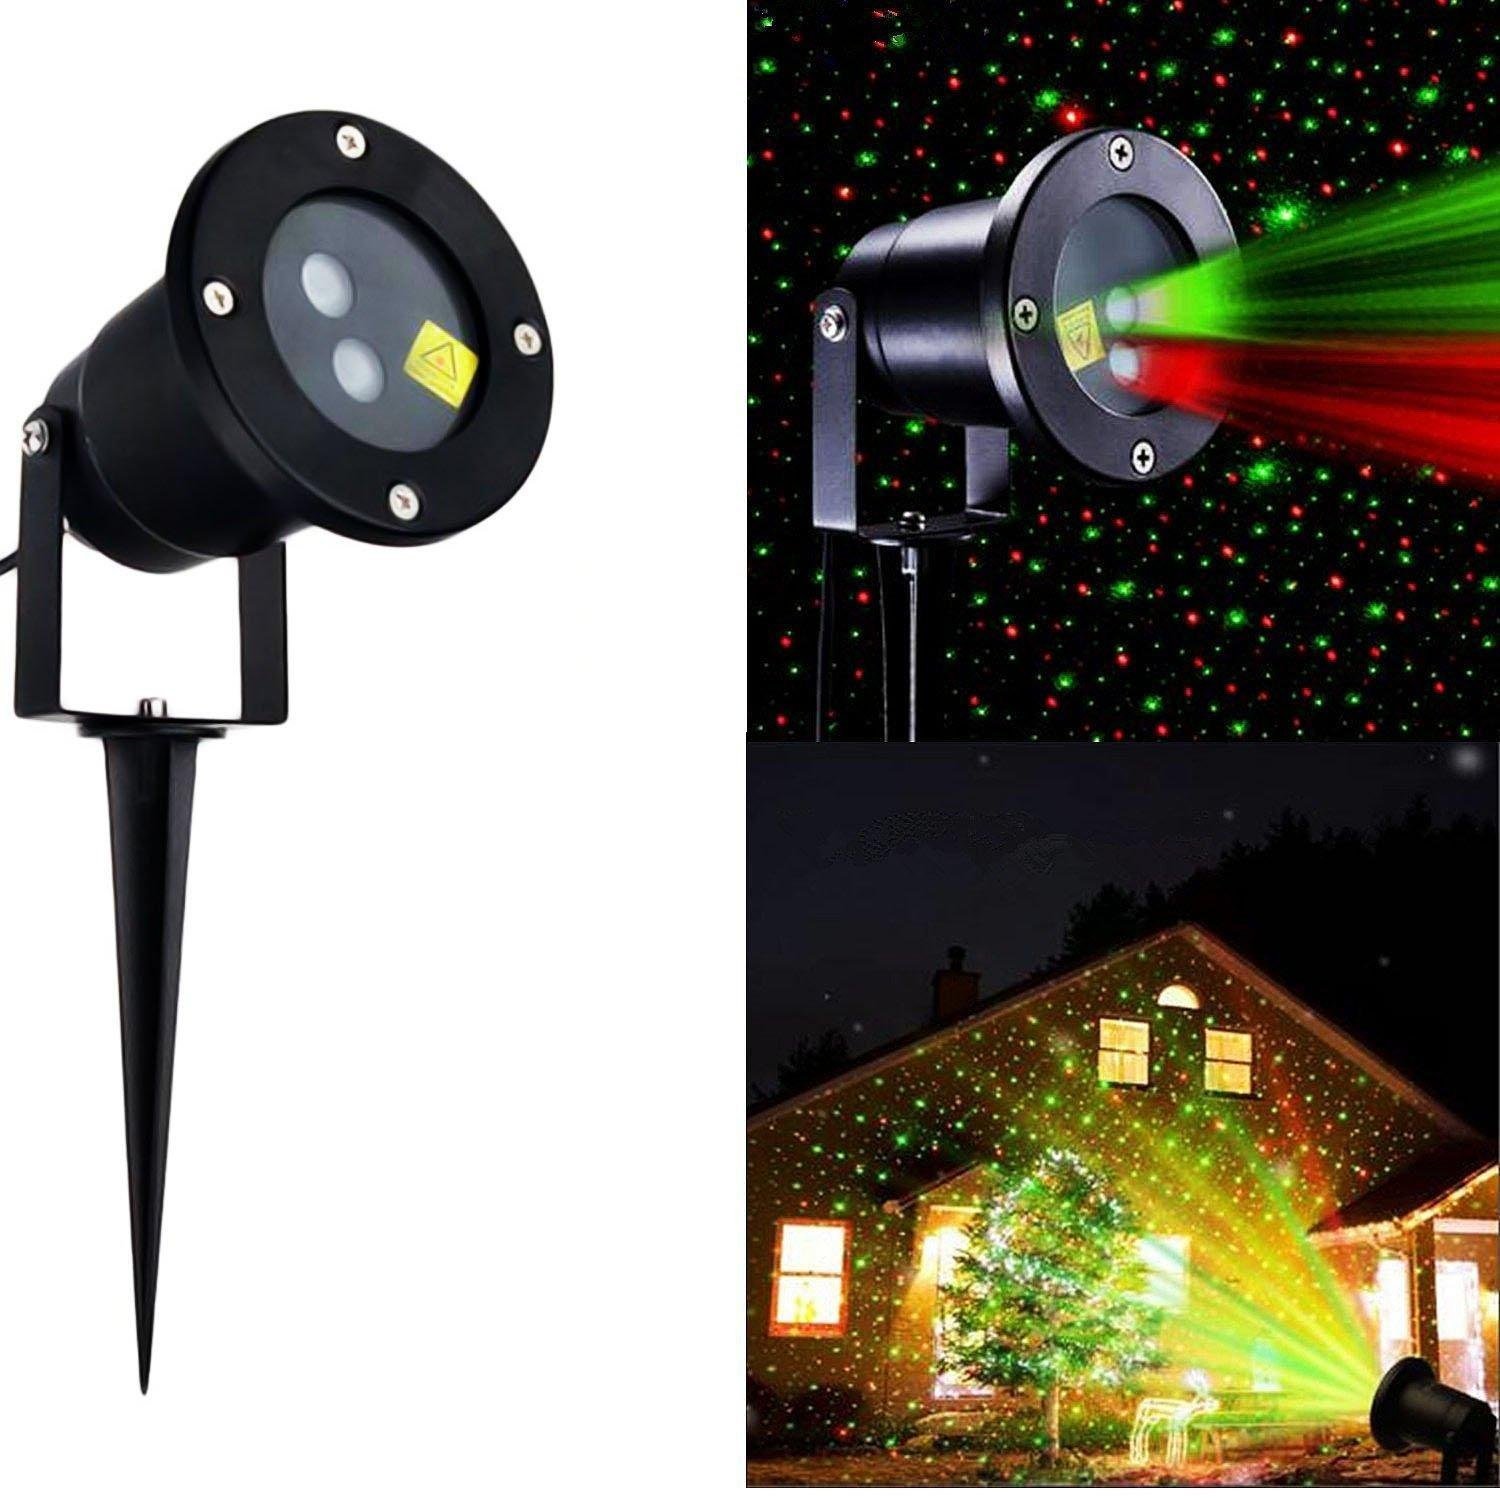 Solario Solar Powered Laser Light Projector w/All-Metal Aluminum Design | Extra-Bright LED Stake Lights | 100% Weather Resistant Outdoor Christmas Lights (Red & Green) (3 Patterns) by Solario (Image #8)